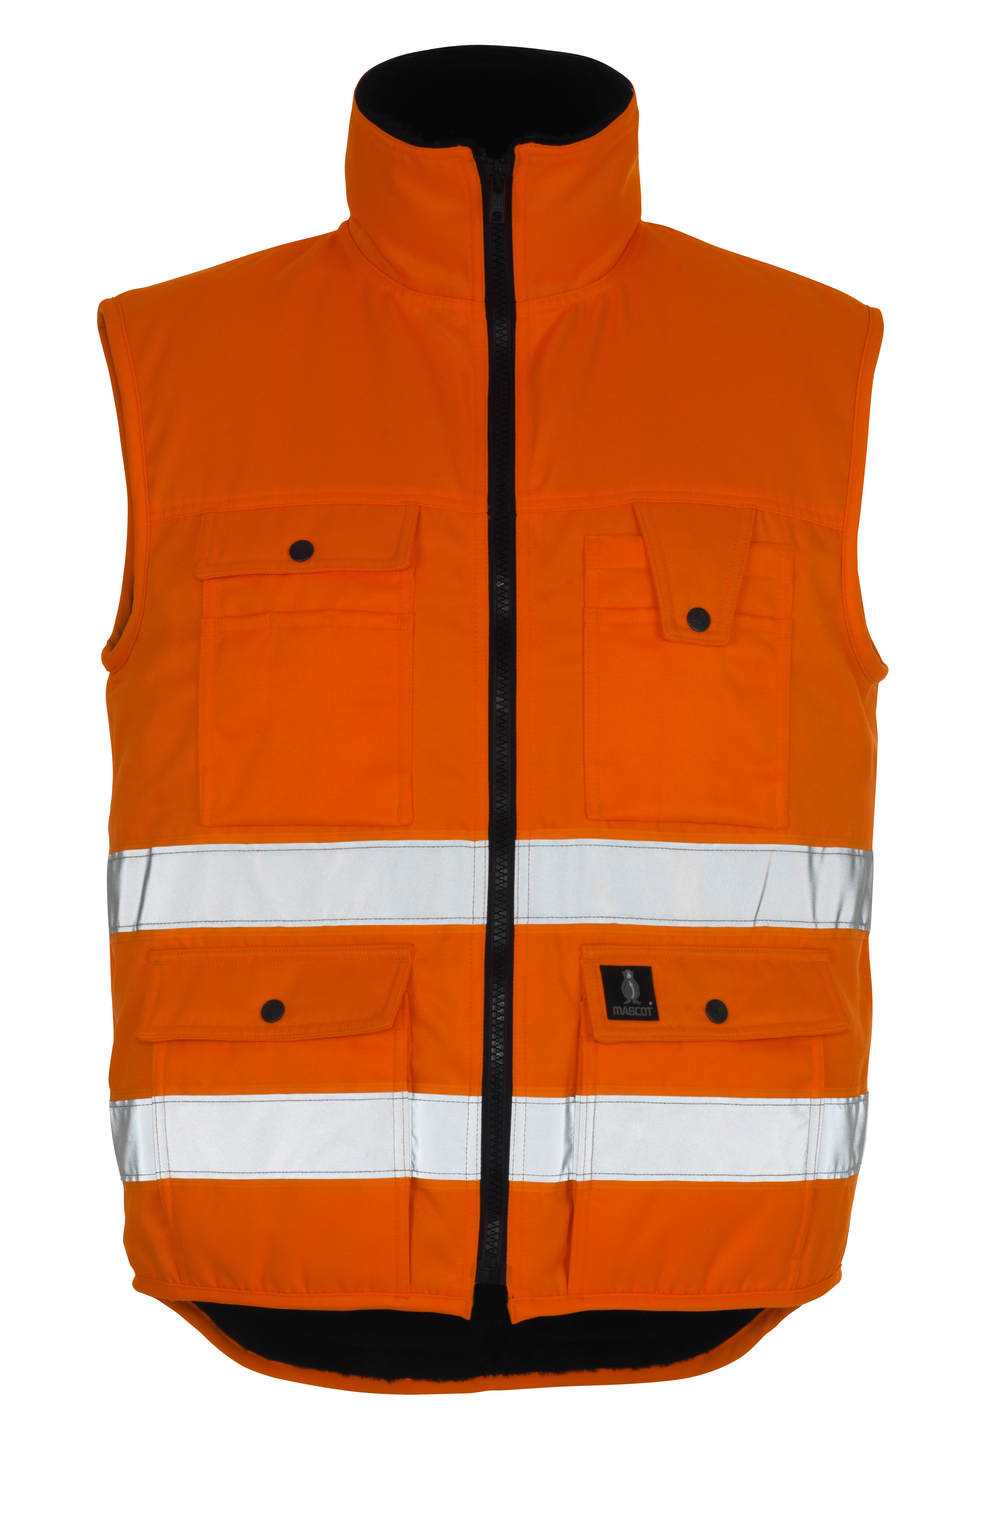 MASCOT SOLDEN WINTER VEST WITH PILE LINING